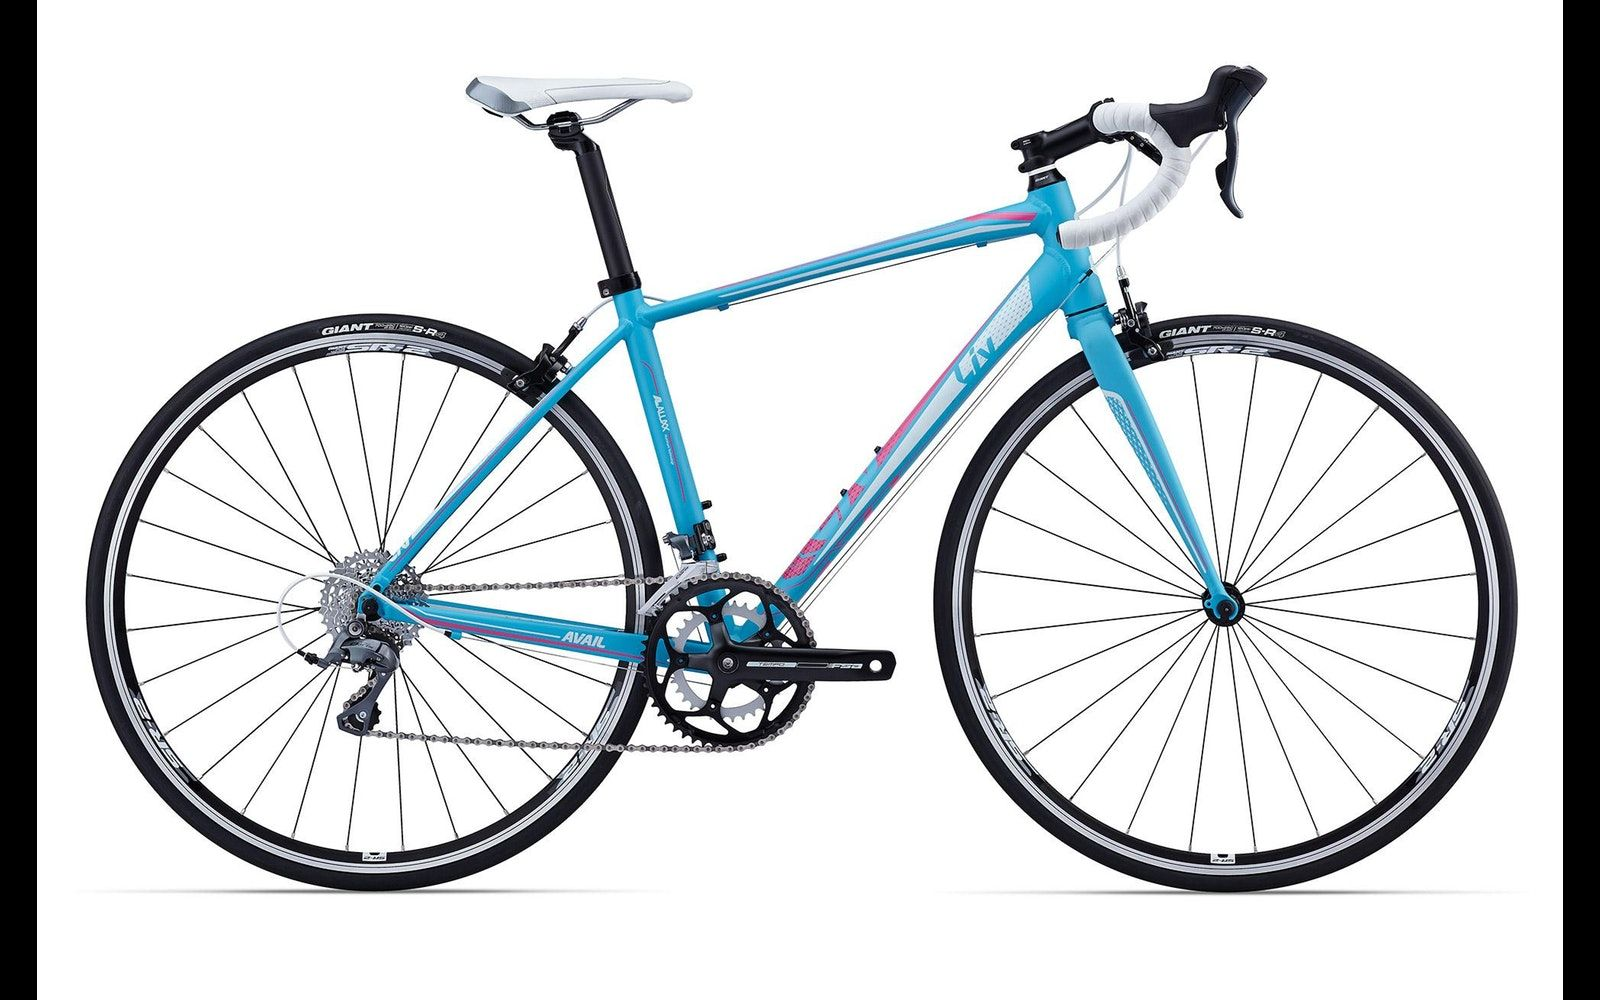 With A Lightweight Aluxx Aluminum Frame Thatos Built Specifically